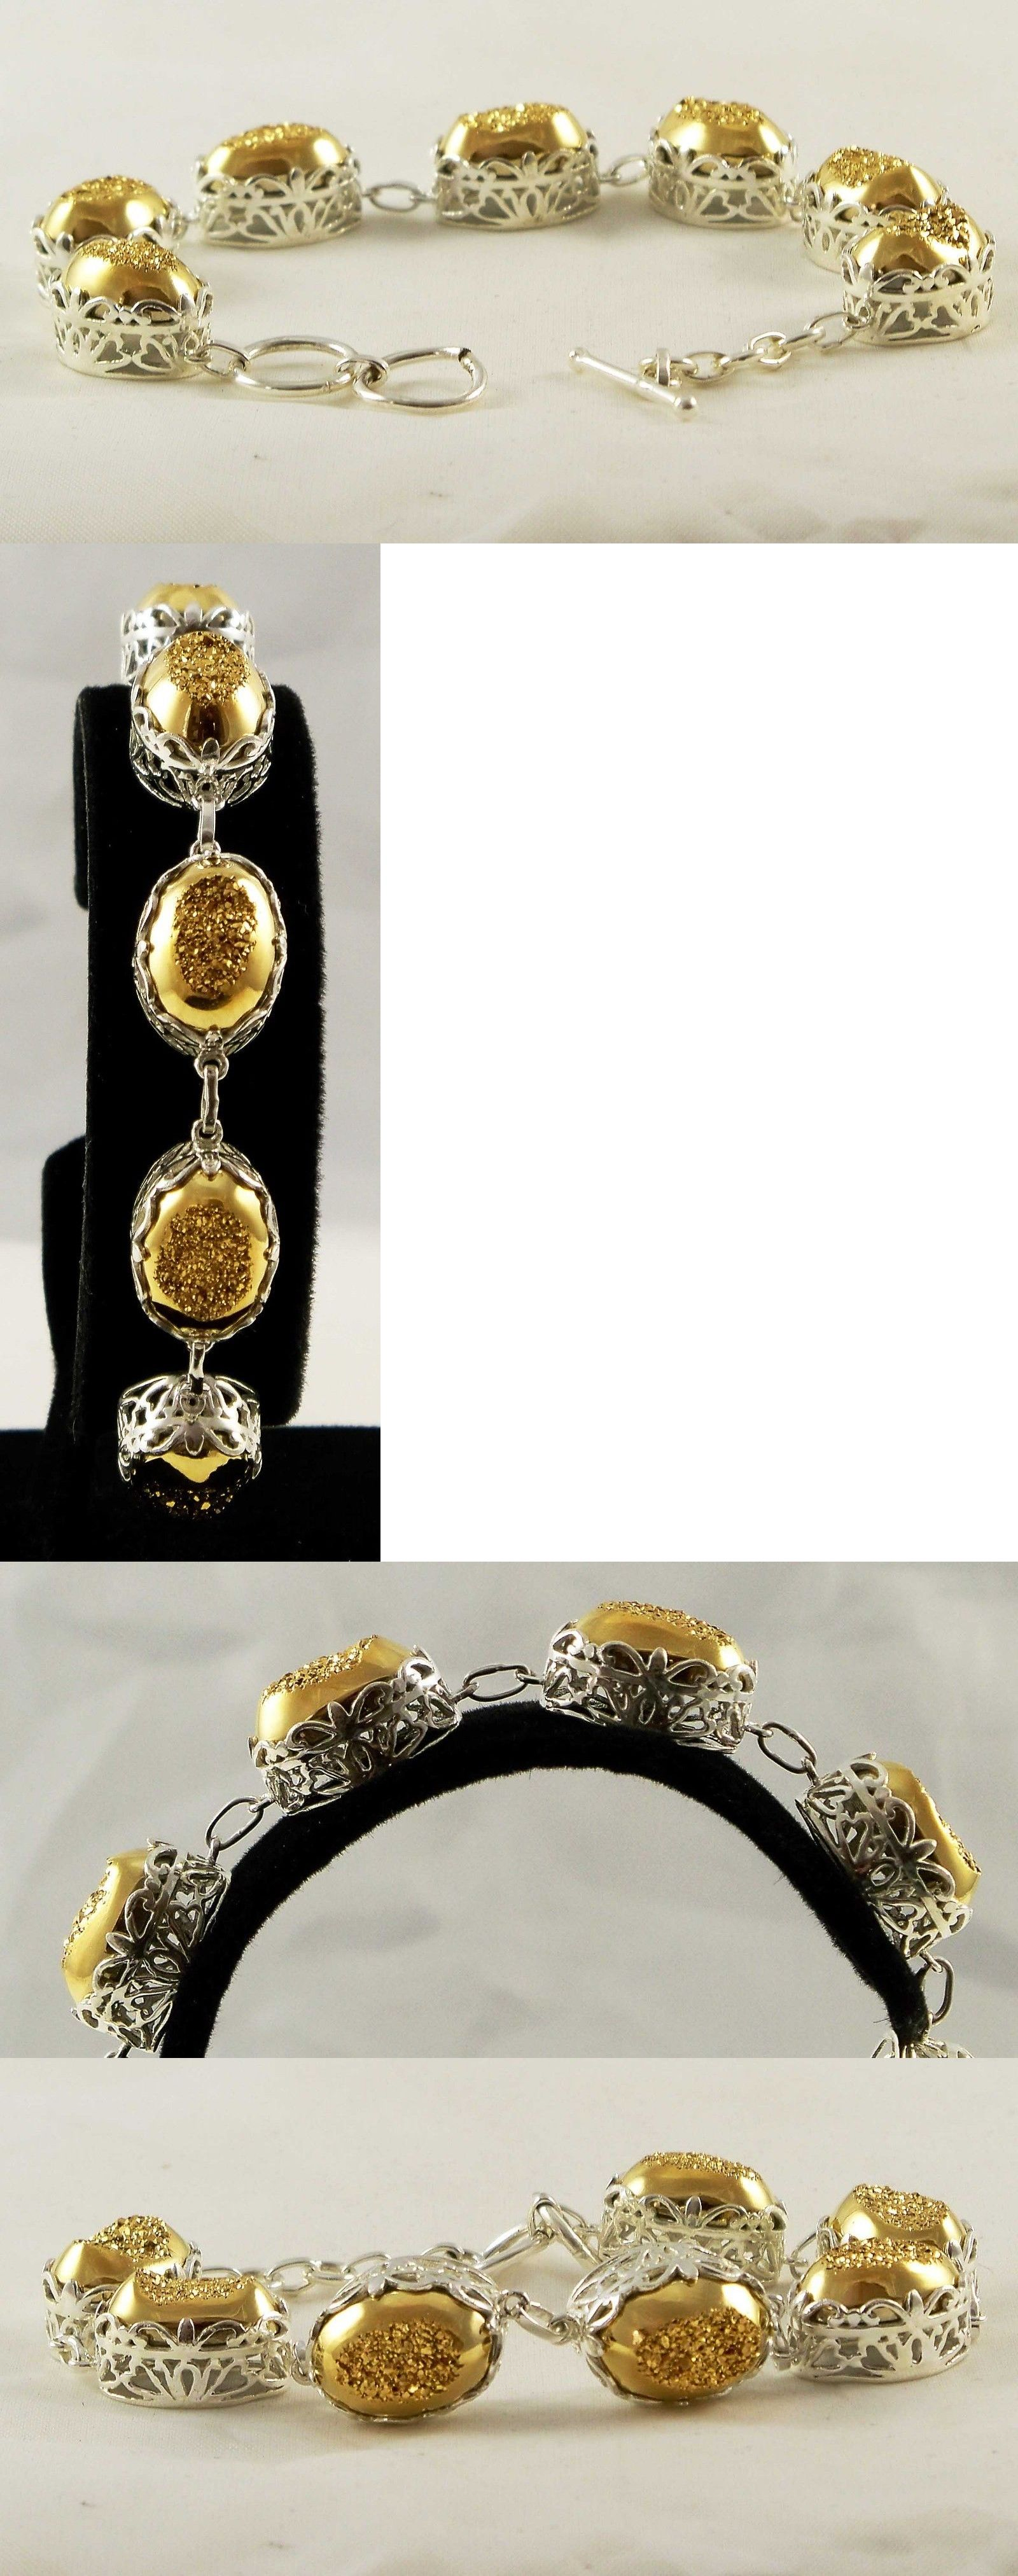 Gemstone 164315: Genuine Gold Drusy Quartz Bracelet 925 Sterling Silver Tcw 36.54 Toggle 7-7.5 BUY IT NOW ONLY: $98.5